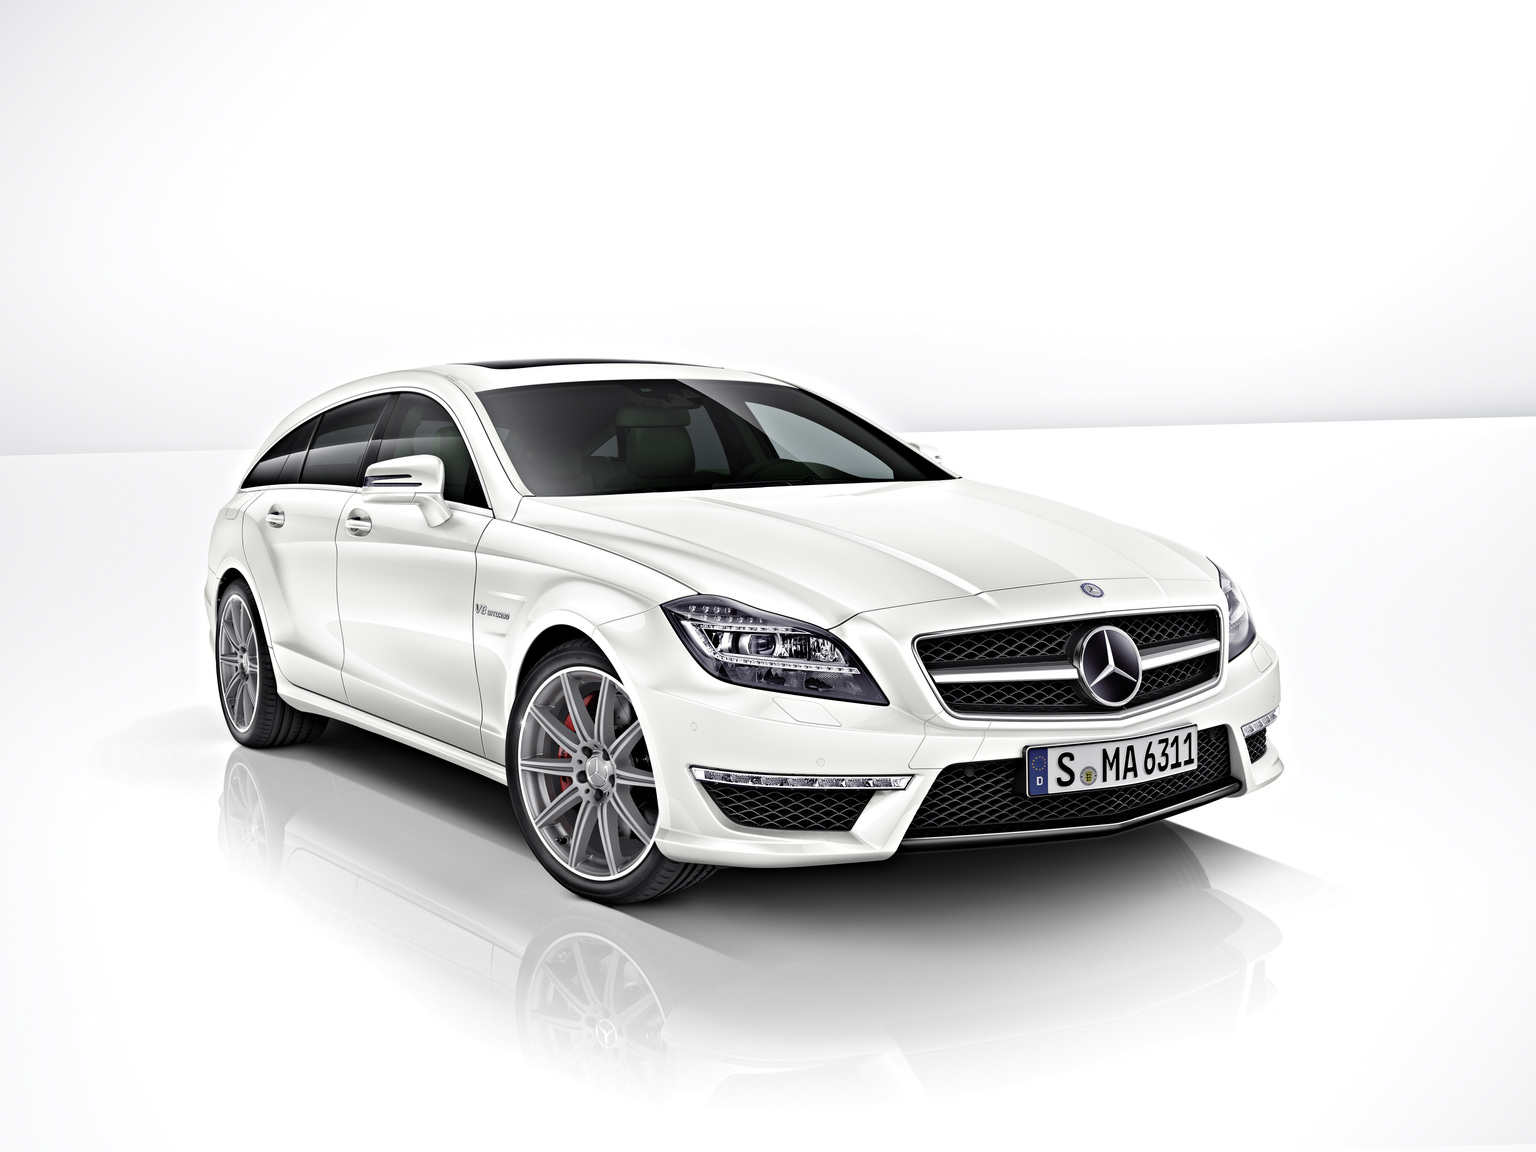 2013 mercedes benz cls 63 amg 4matic shooting brake. Black Bedroom Furniture Sets. Home Design Ideas